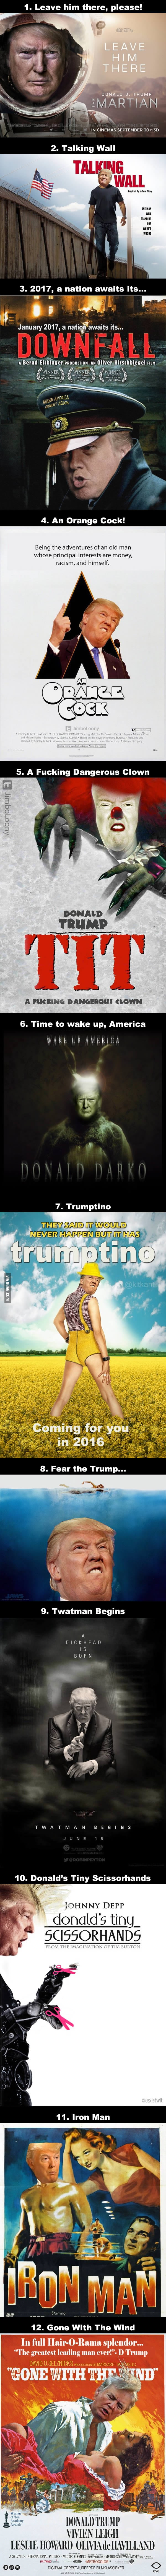 Photoshopping Donald Trump on movie posters is now a trend on the internet